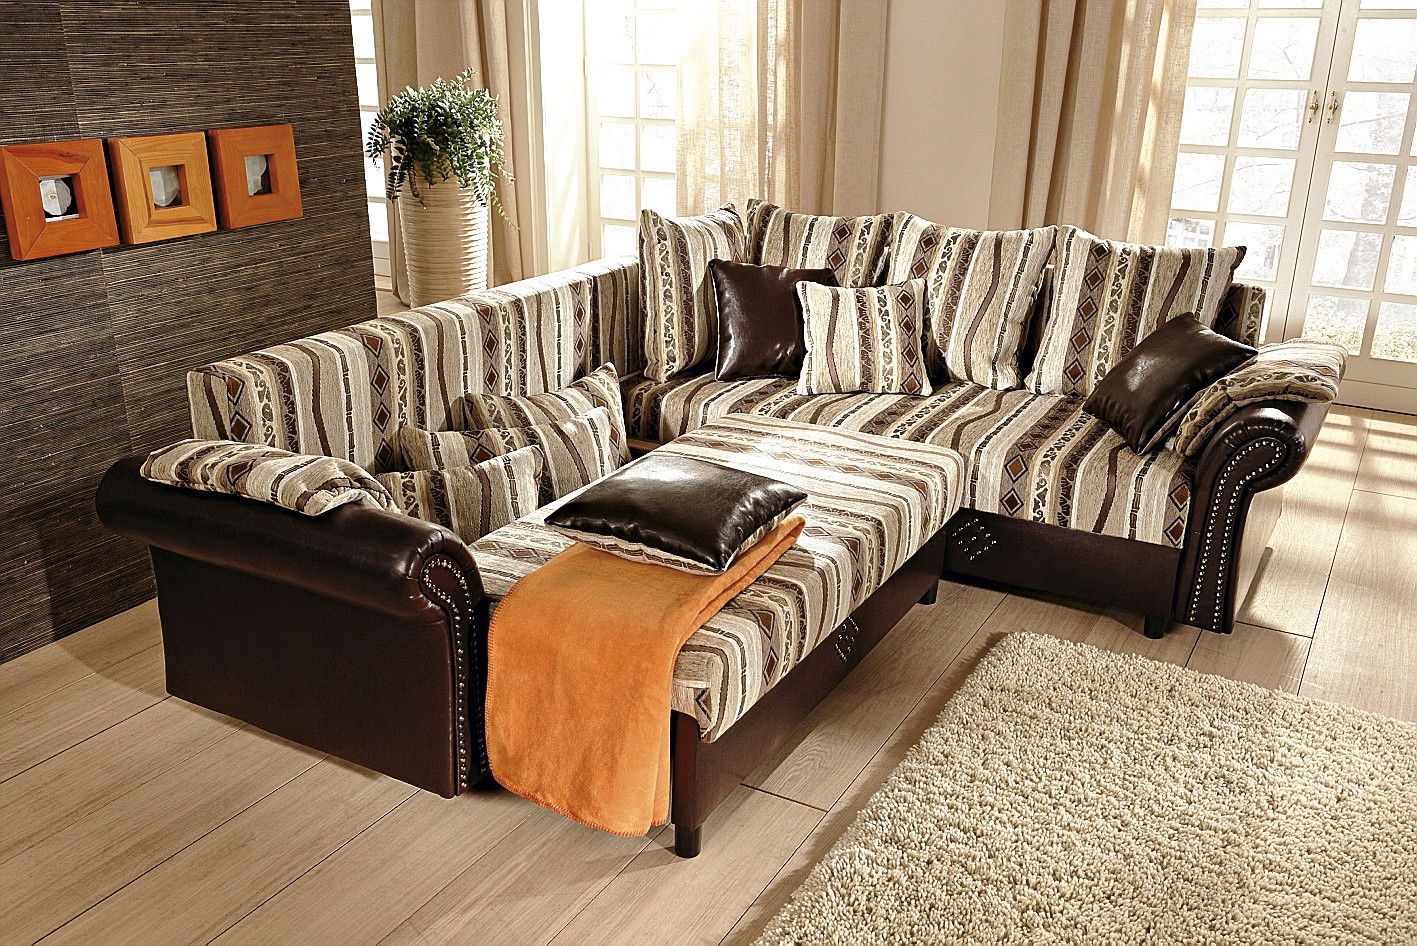 wohnzimmer mit ausziehbarem liege sofa. Black Bedroom Furniture Sets. Home Design Ideas